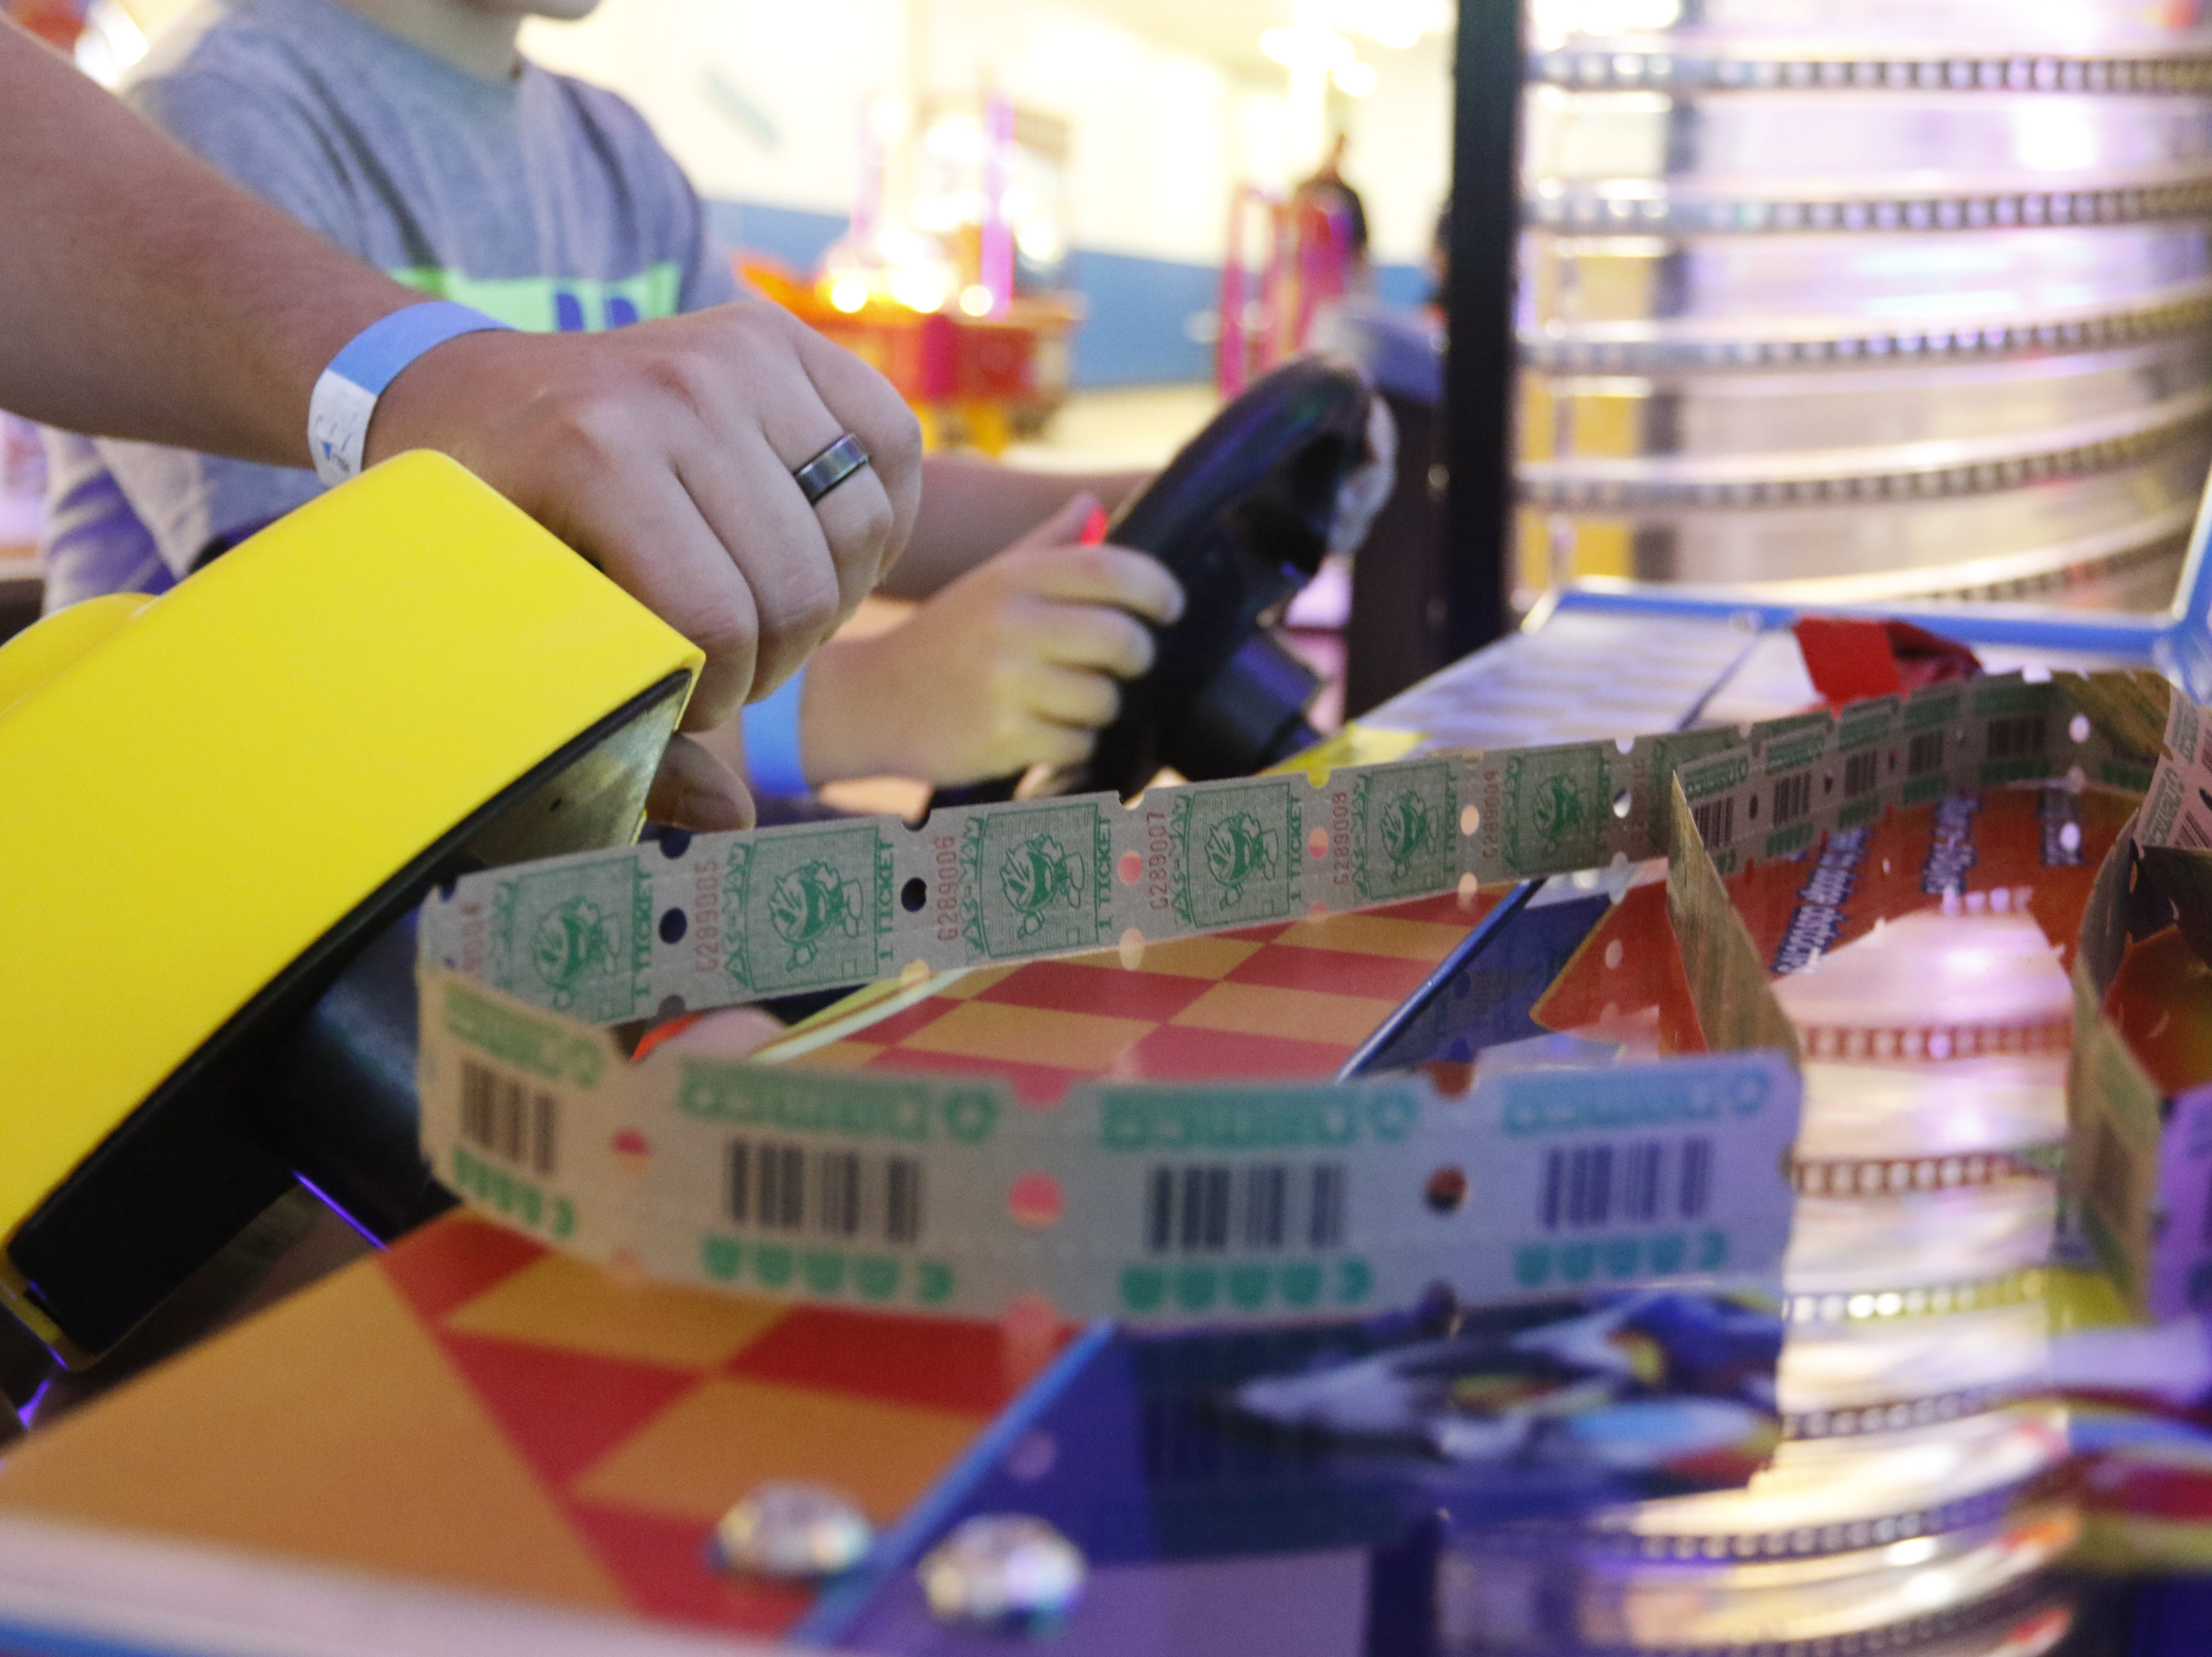 Layton Kramer, 8, and his father Chris Matijevic plays a game at Hub City Adventure Wednesday, July 18, 2018.